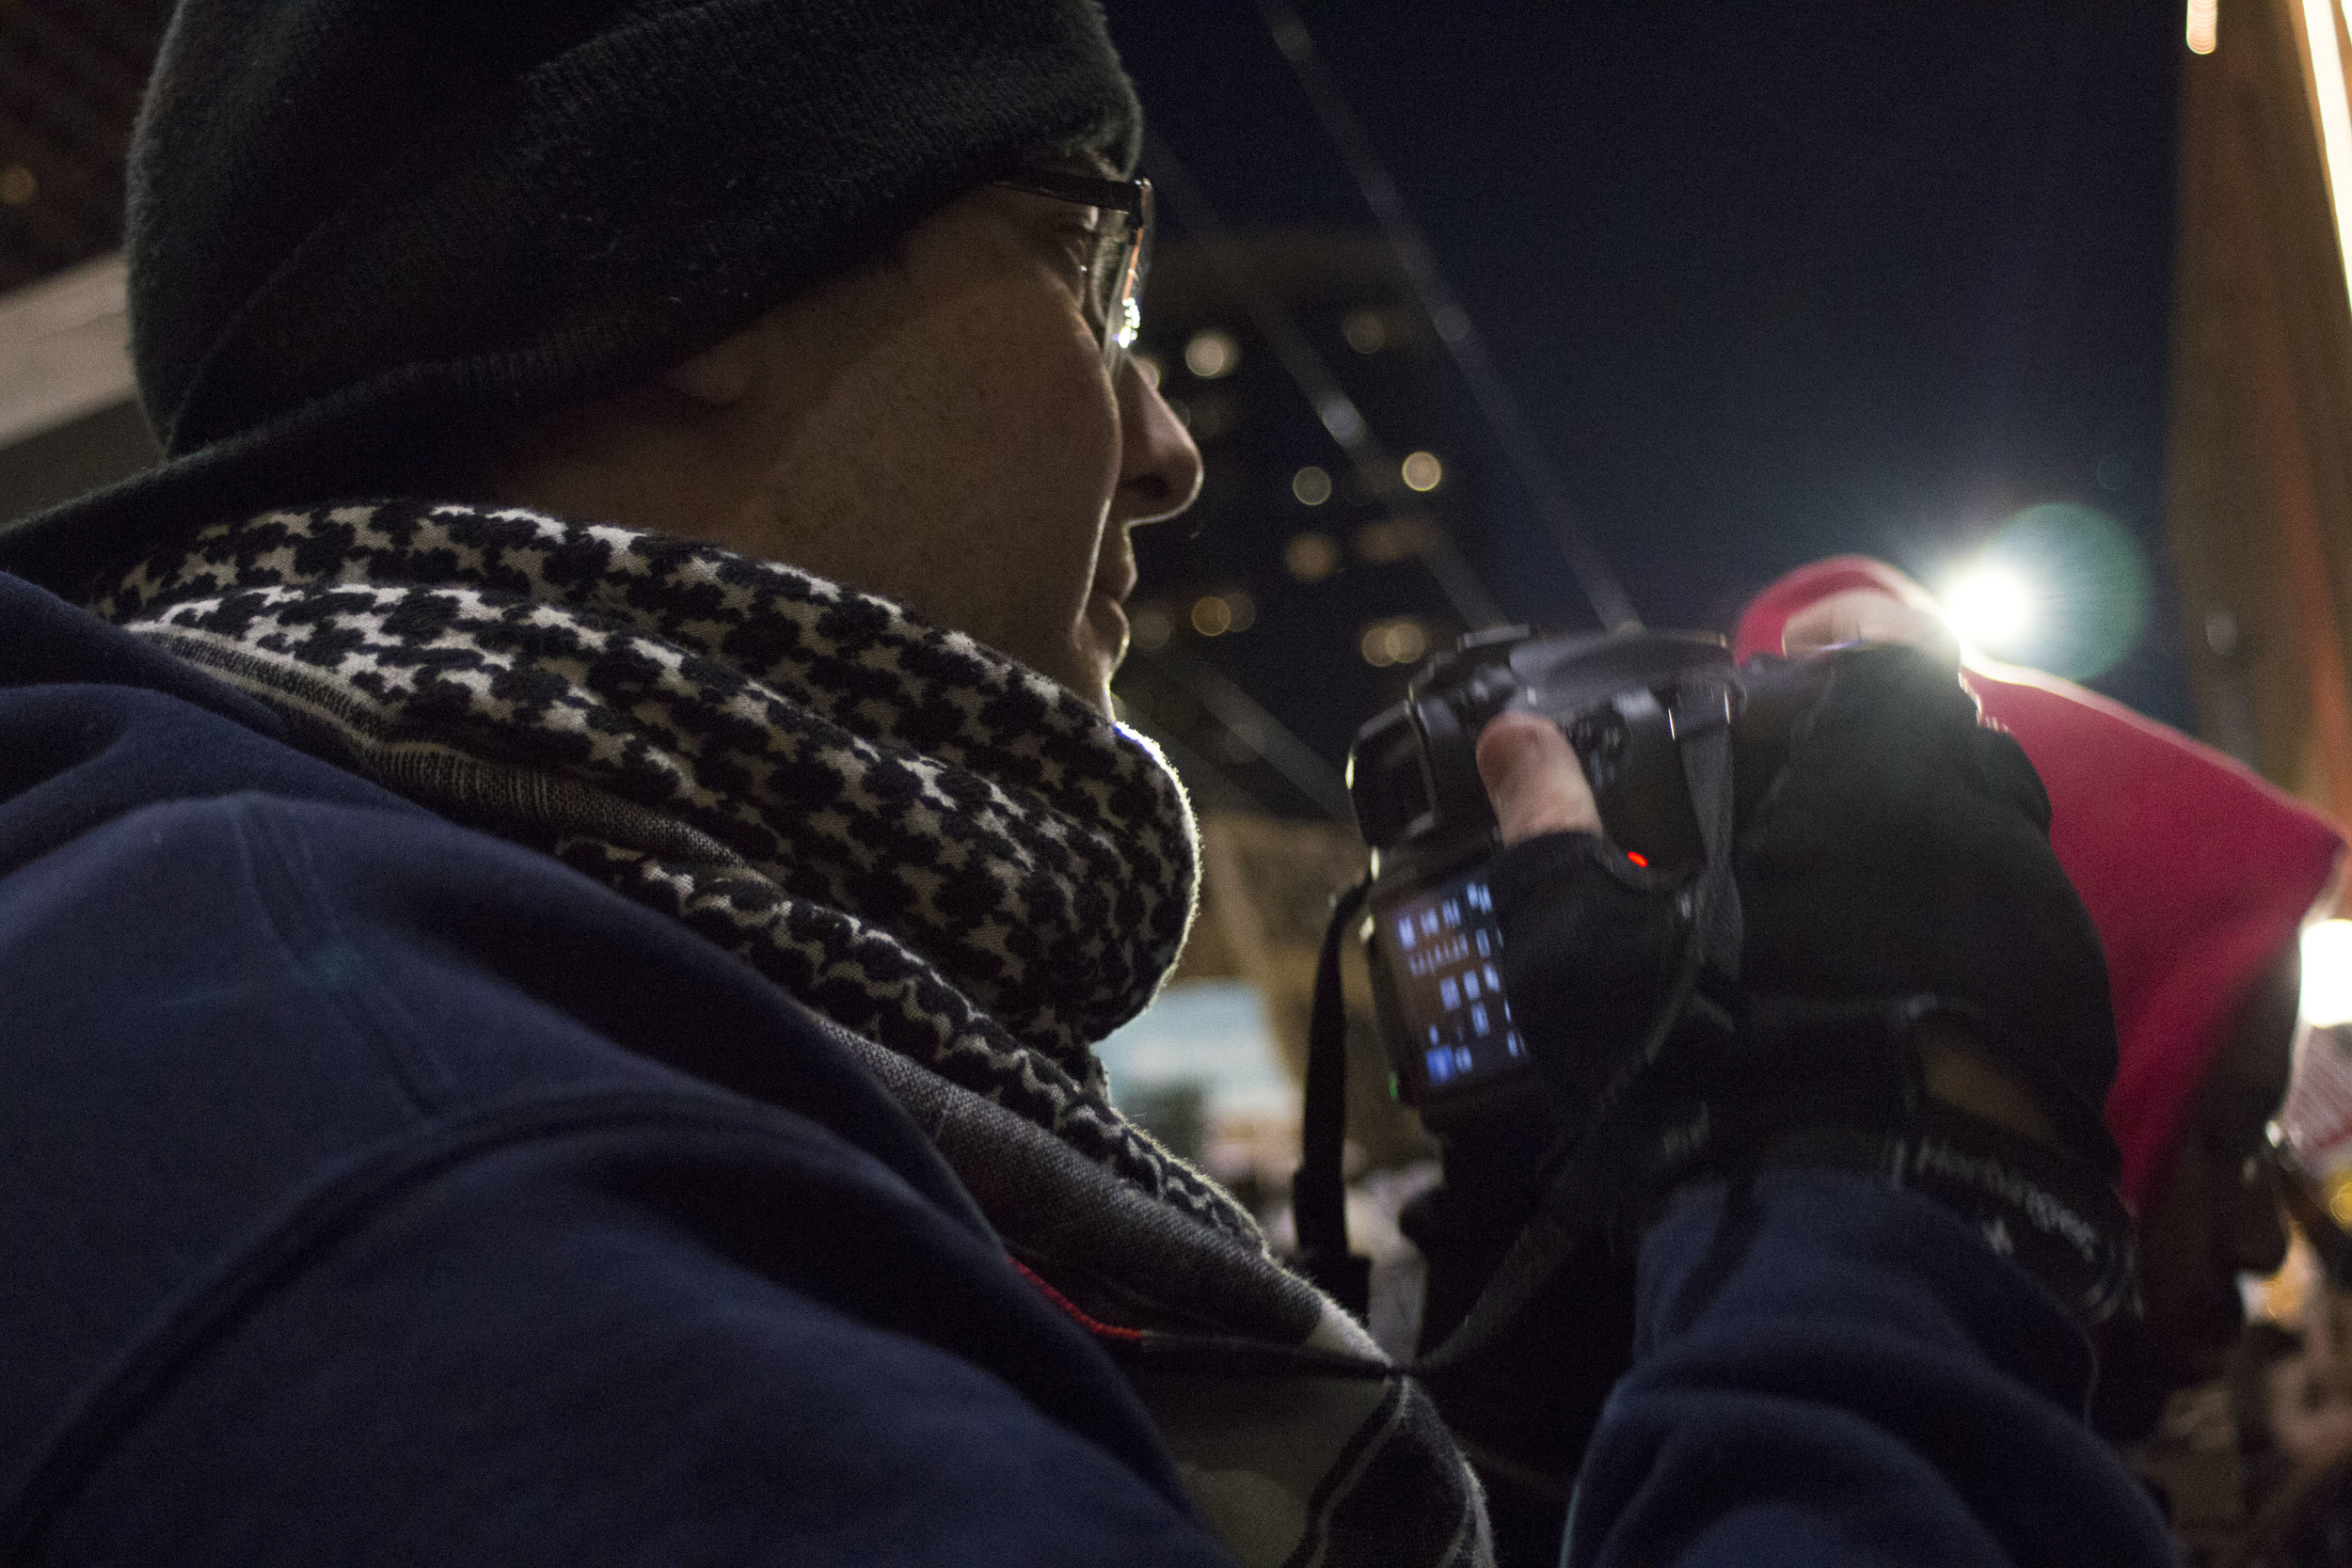 Toward the end of the Black Friday Black Lives Matter protest, Nelson peaks over his camera and watches performers and protesters vie for attention during the annual tree lighting ceremony at Westlake Center.